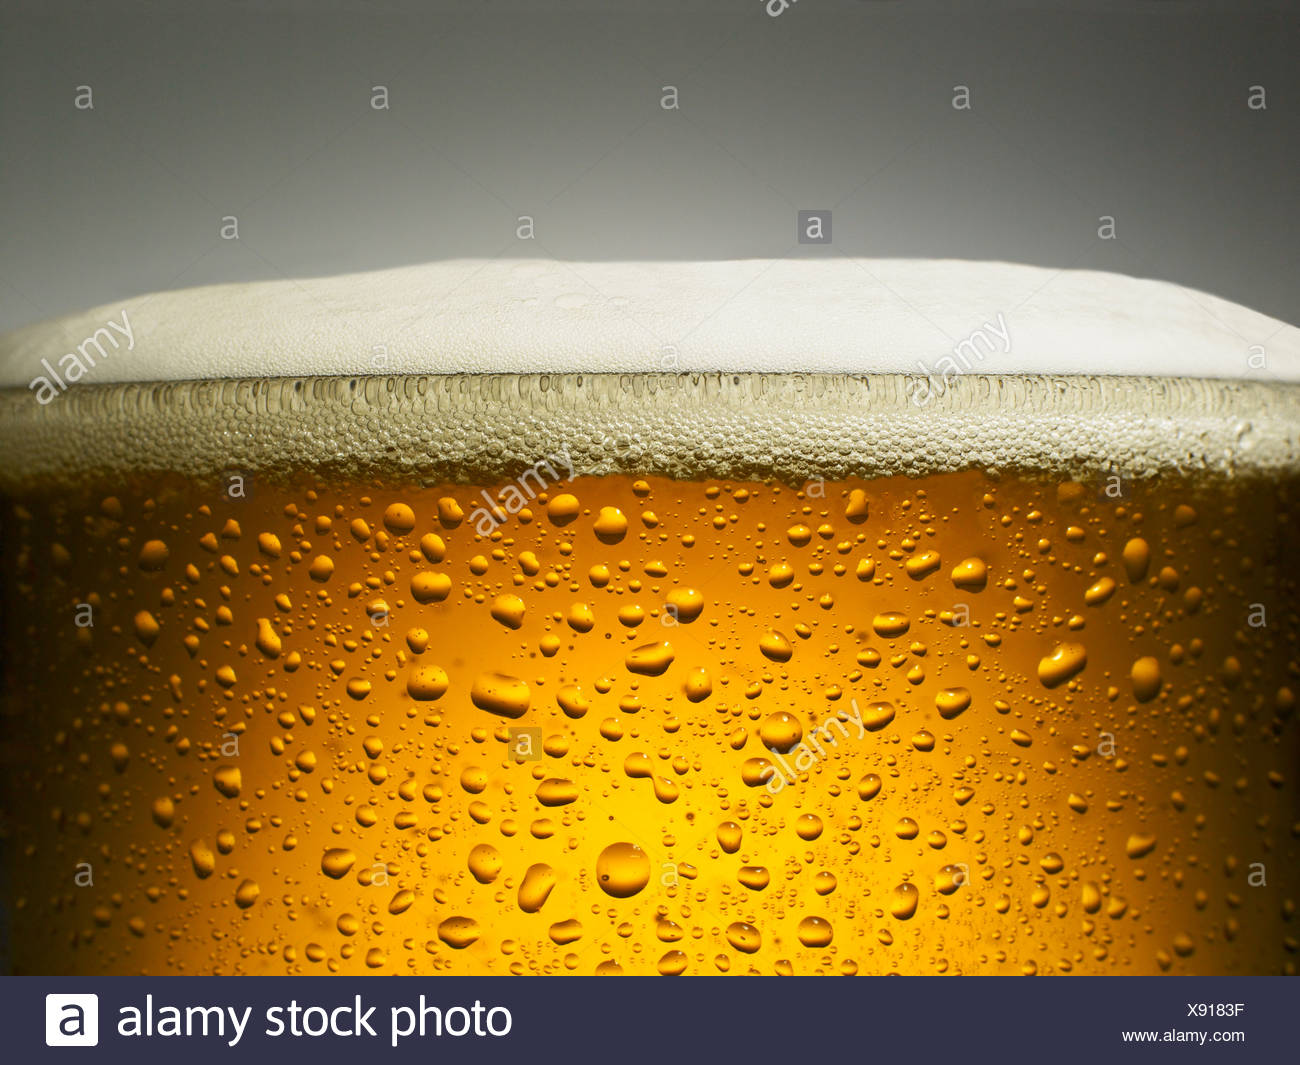 Close up of glass of beer - Stock Image